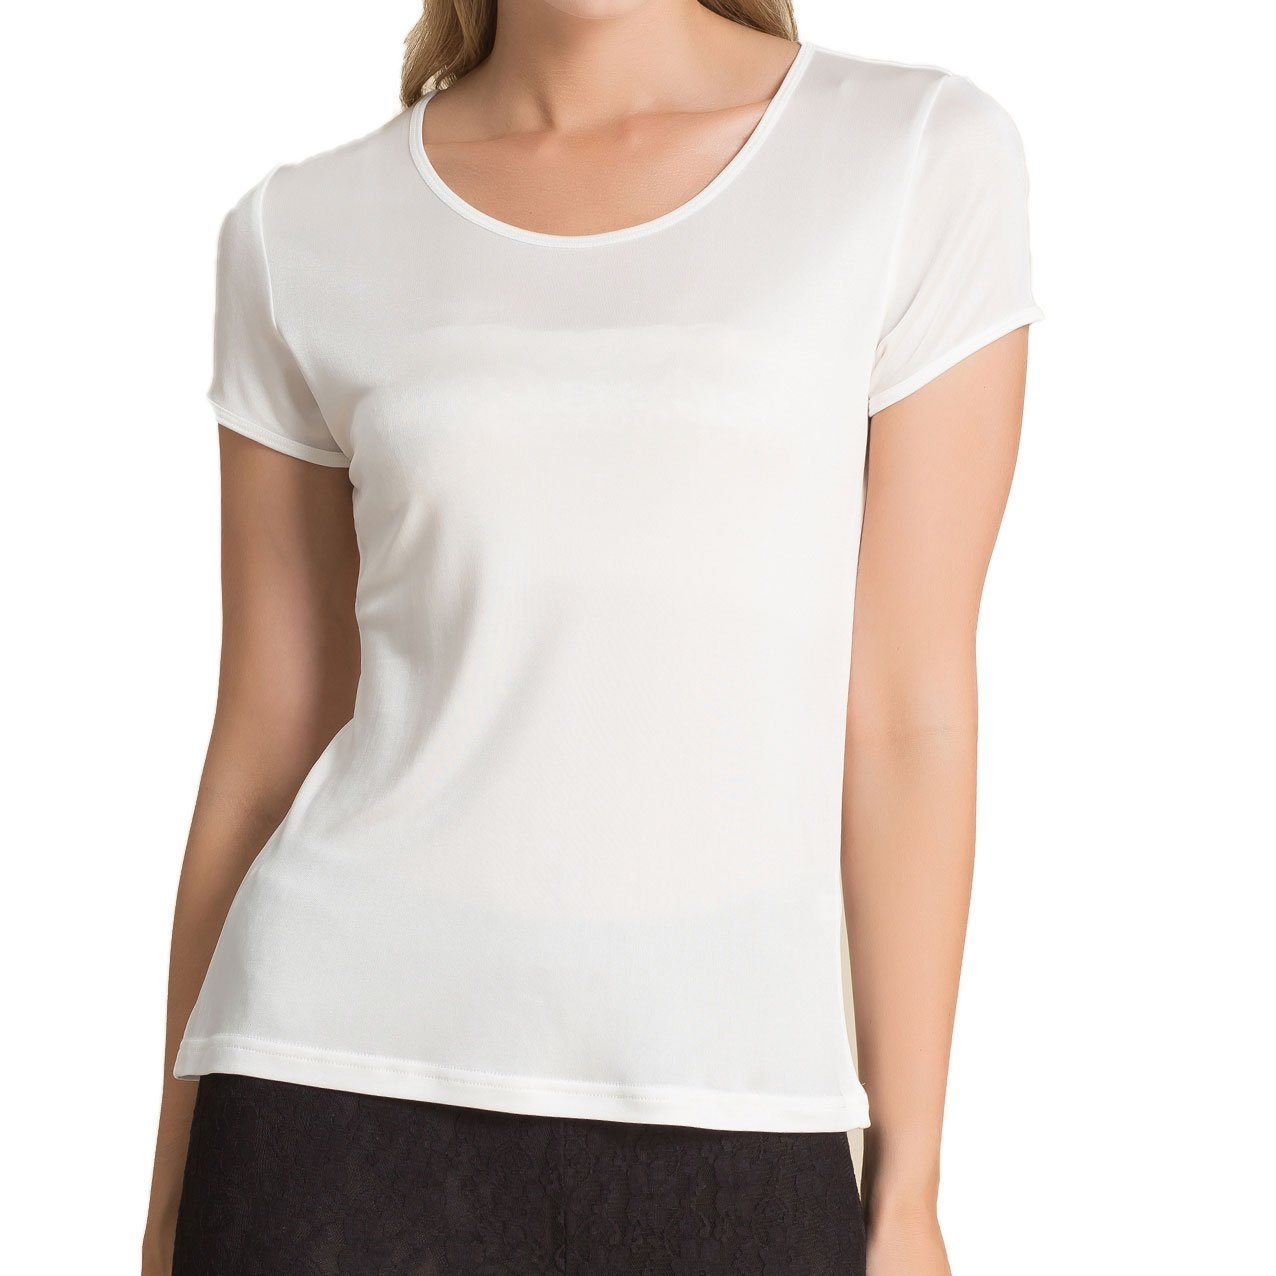 Paradise Silk Pure Silk Knitted Women's Round Neck Short Sleeve Tee Large White